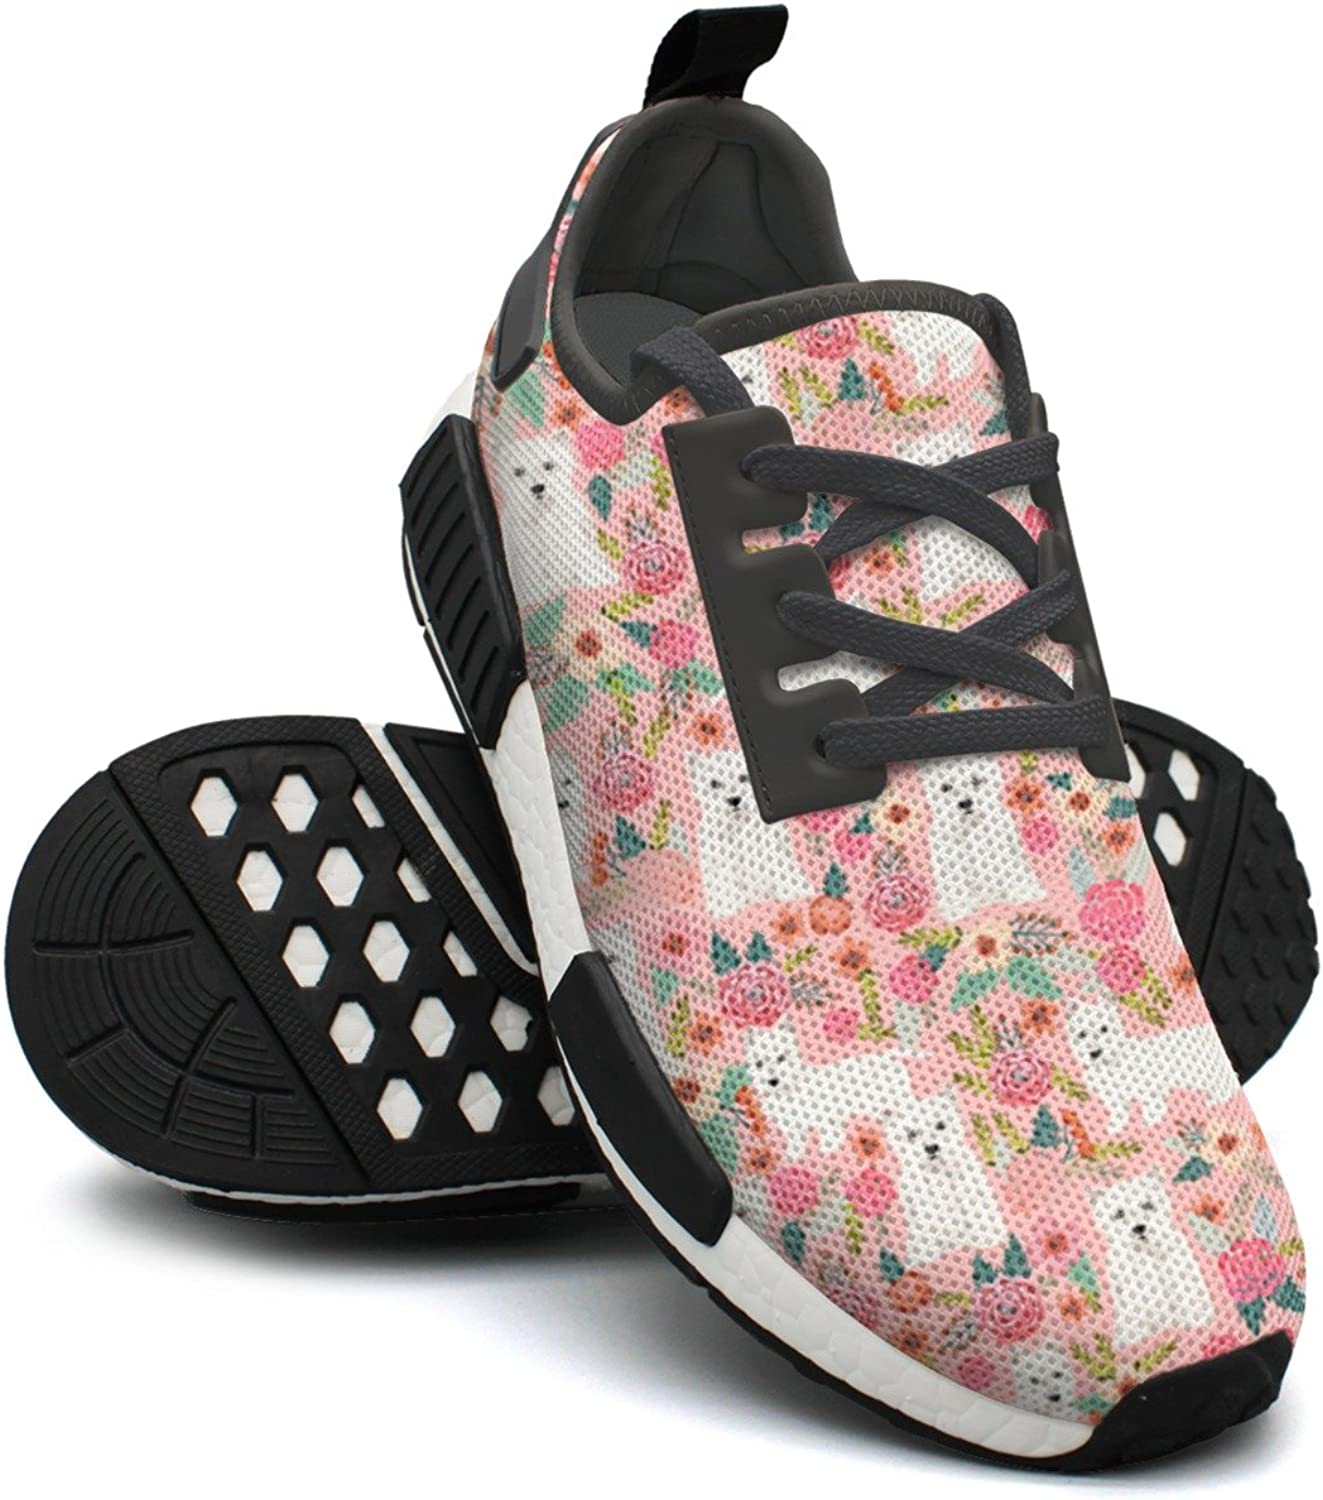 Pink Vintage Westie Dog Floral Women's Hunting Lightweight Sneakers Gym Outdoor Running shoes